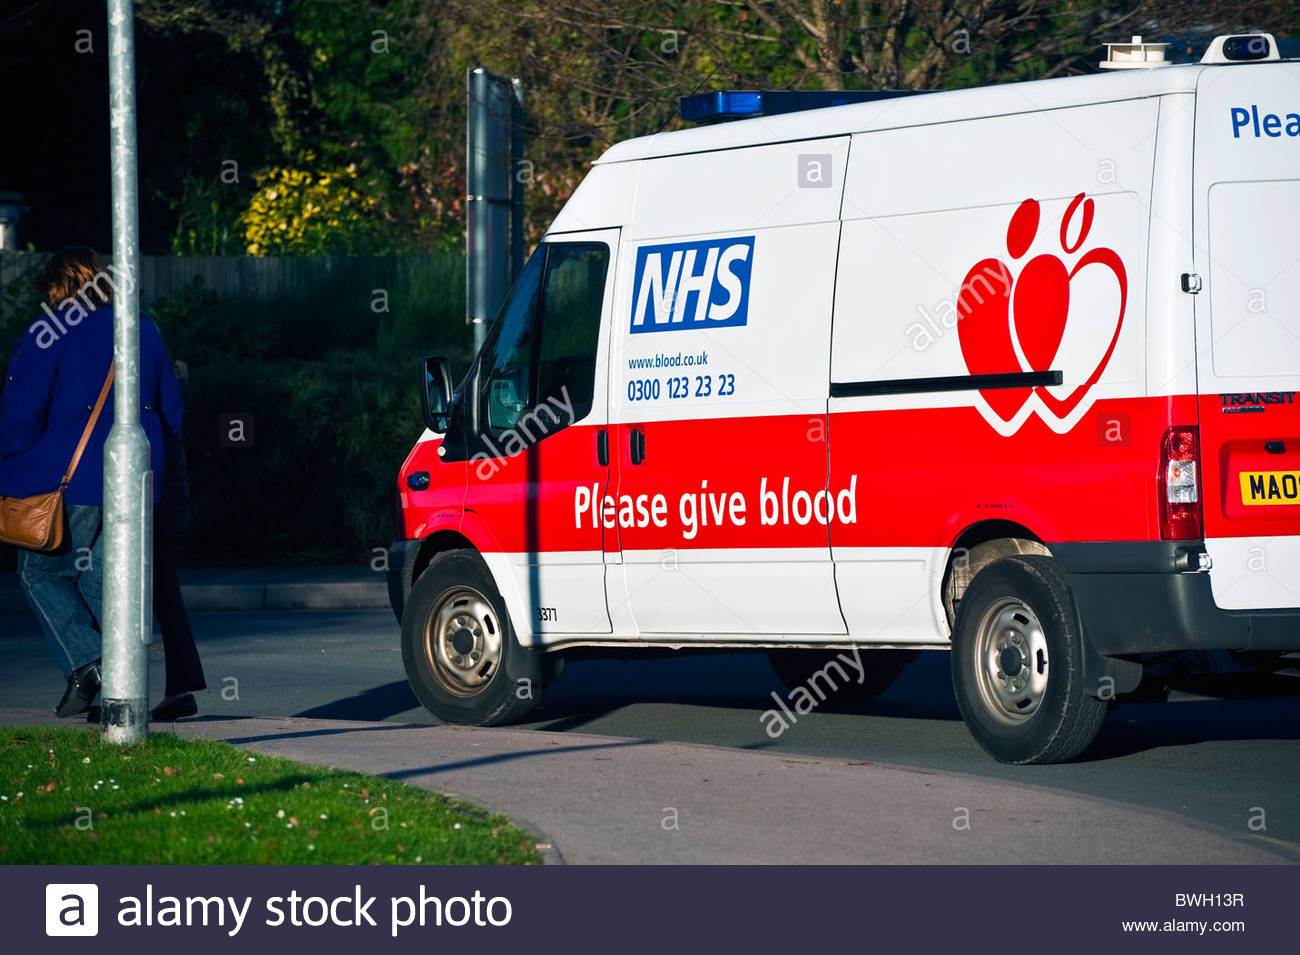 Blood donor van, UK. NHS vehicle please give blood. - Stock Image